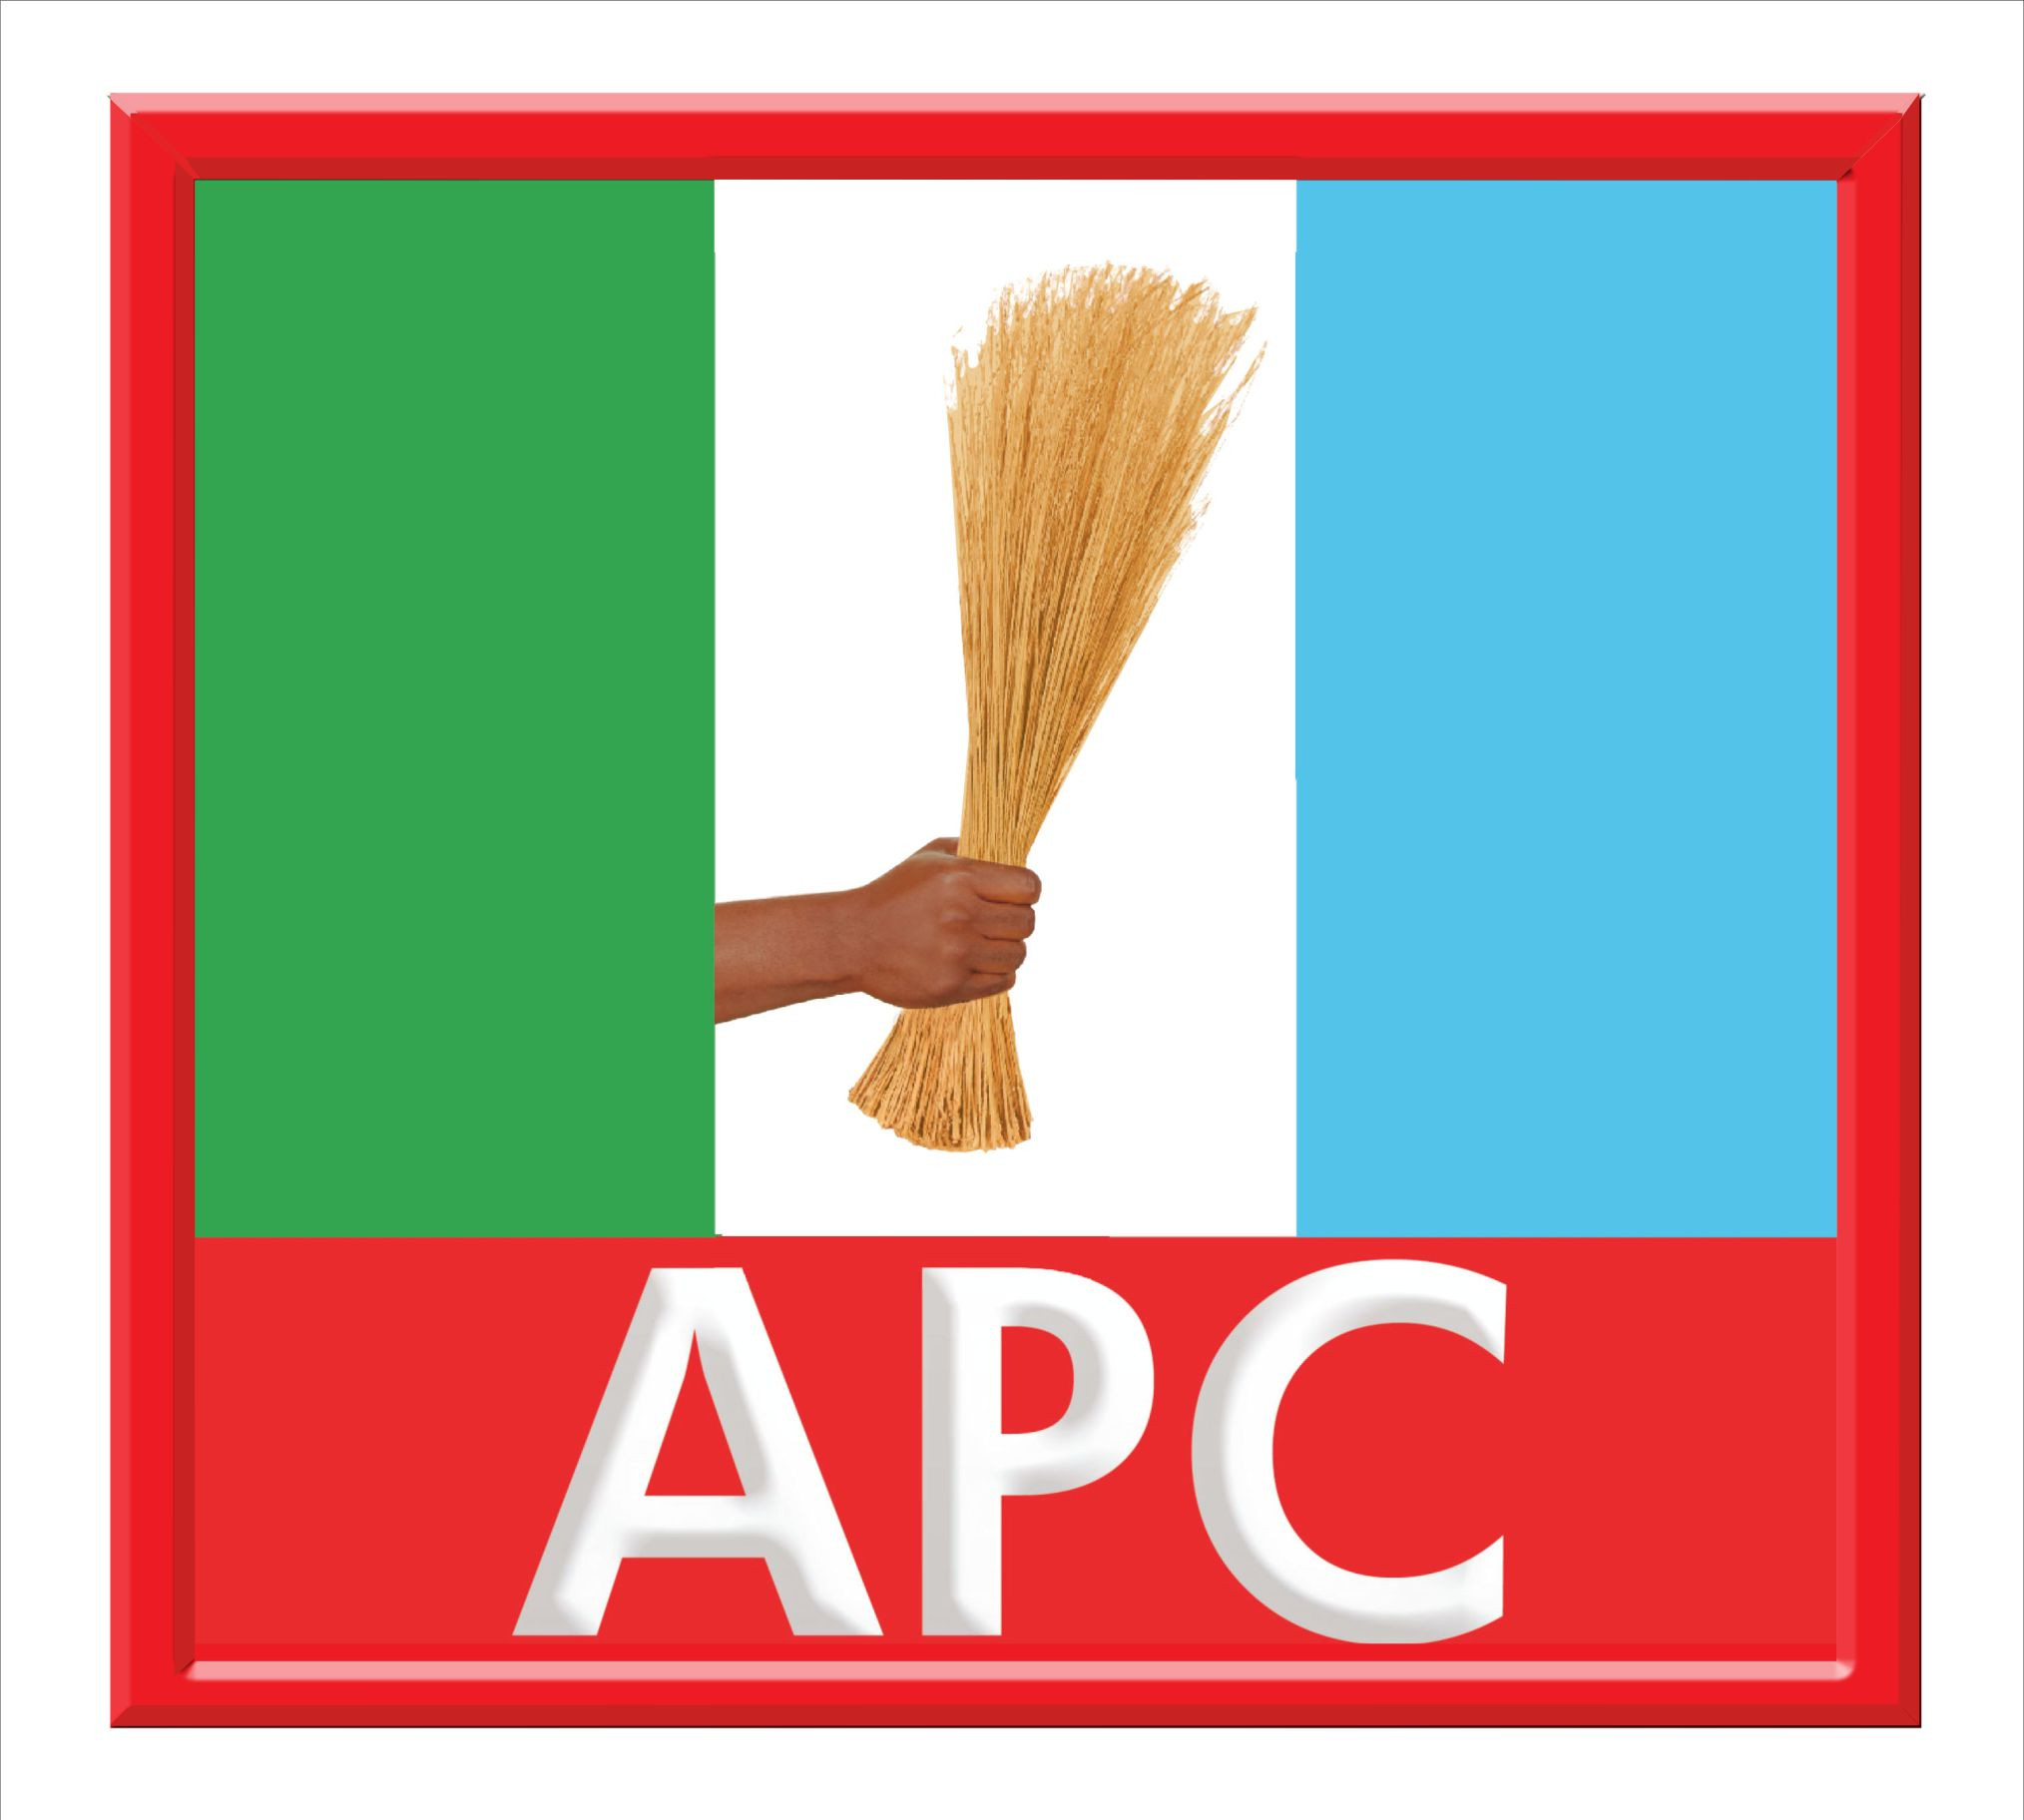 Transparency International's report of increased corruption in Nigeria only helps to advance gullibility of most Nigerians  and influnce 2023 election - APC Governors